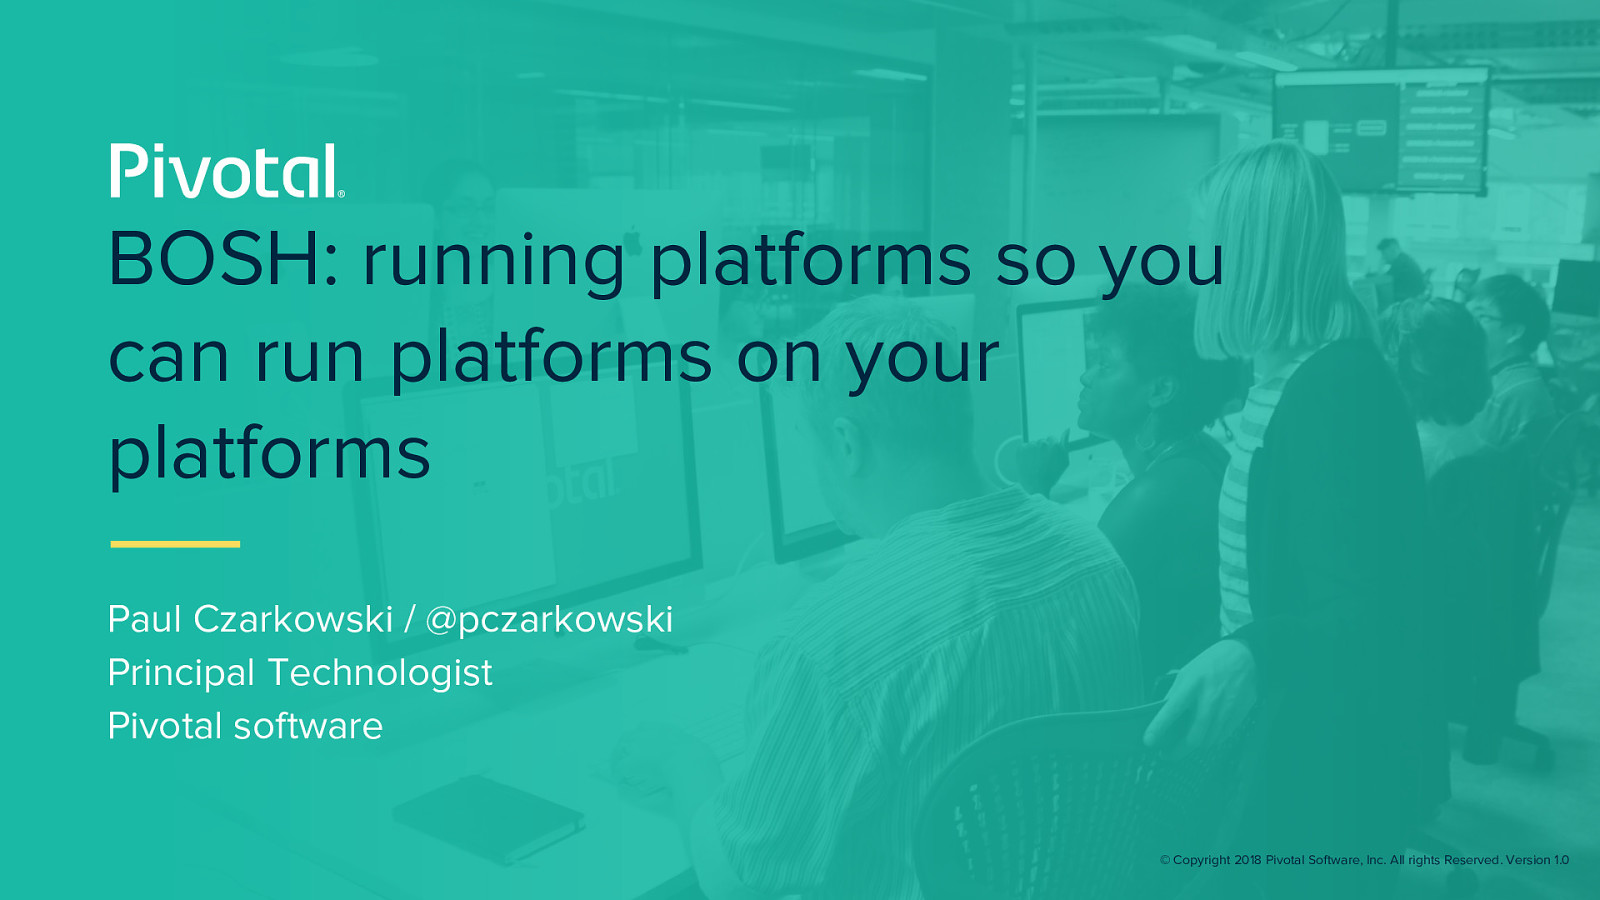 running platforms so you can run platforms on your platforms